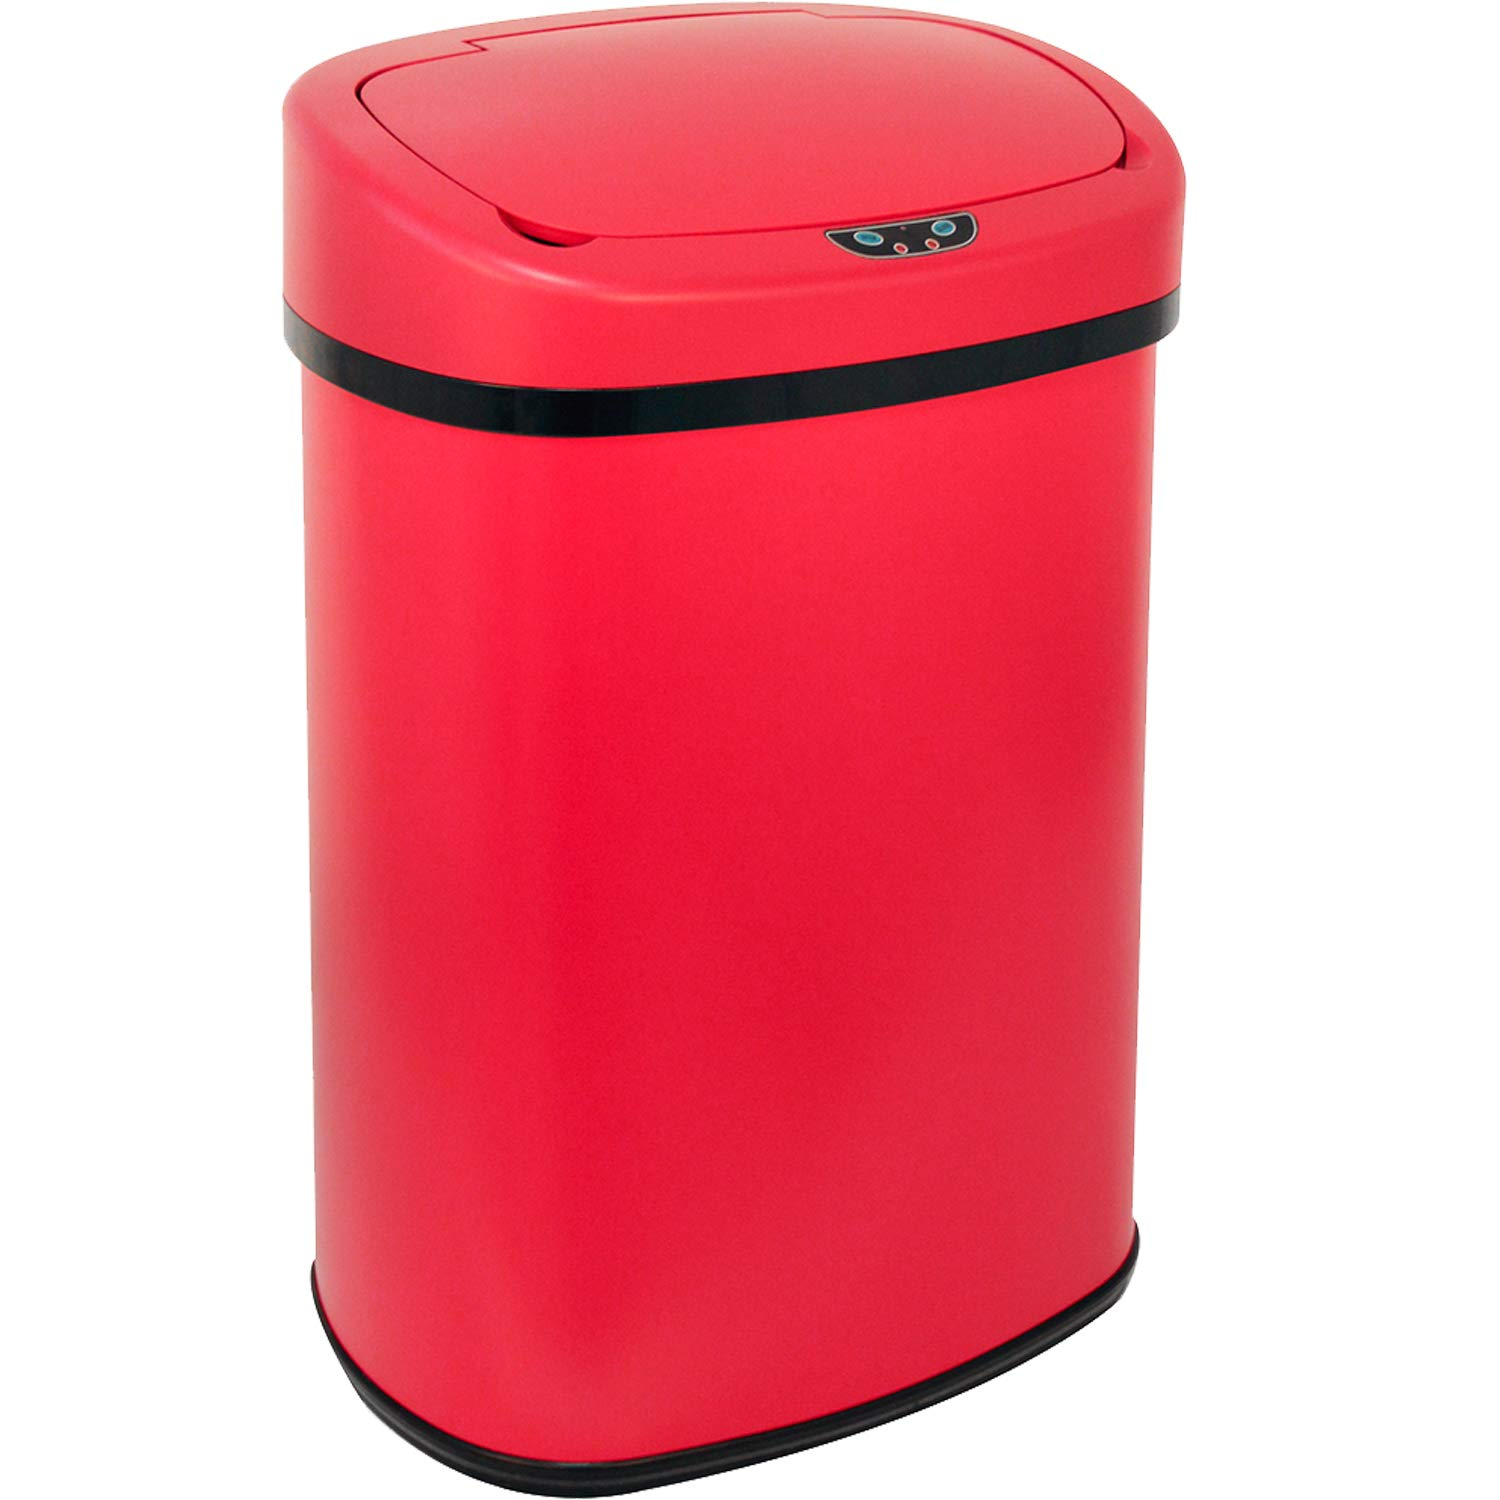 Picture of: Vnewone Kitchen Trash Can Garbage 13 Gallon Waste Bin For Home Office Bedroom Stainless Steel Automatic Touch Free High Capacity 50 Liter